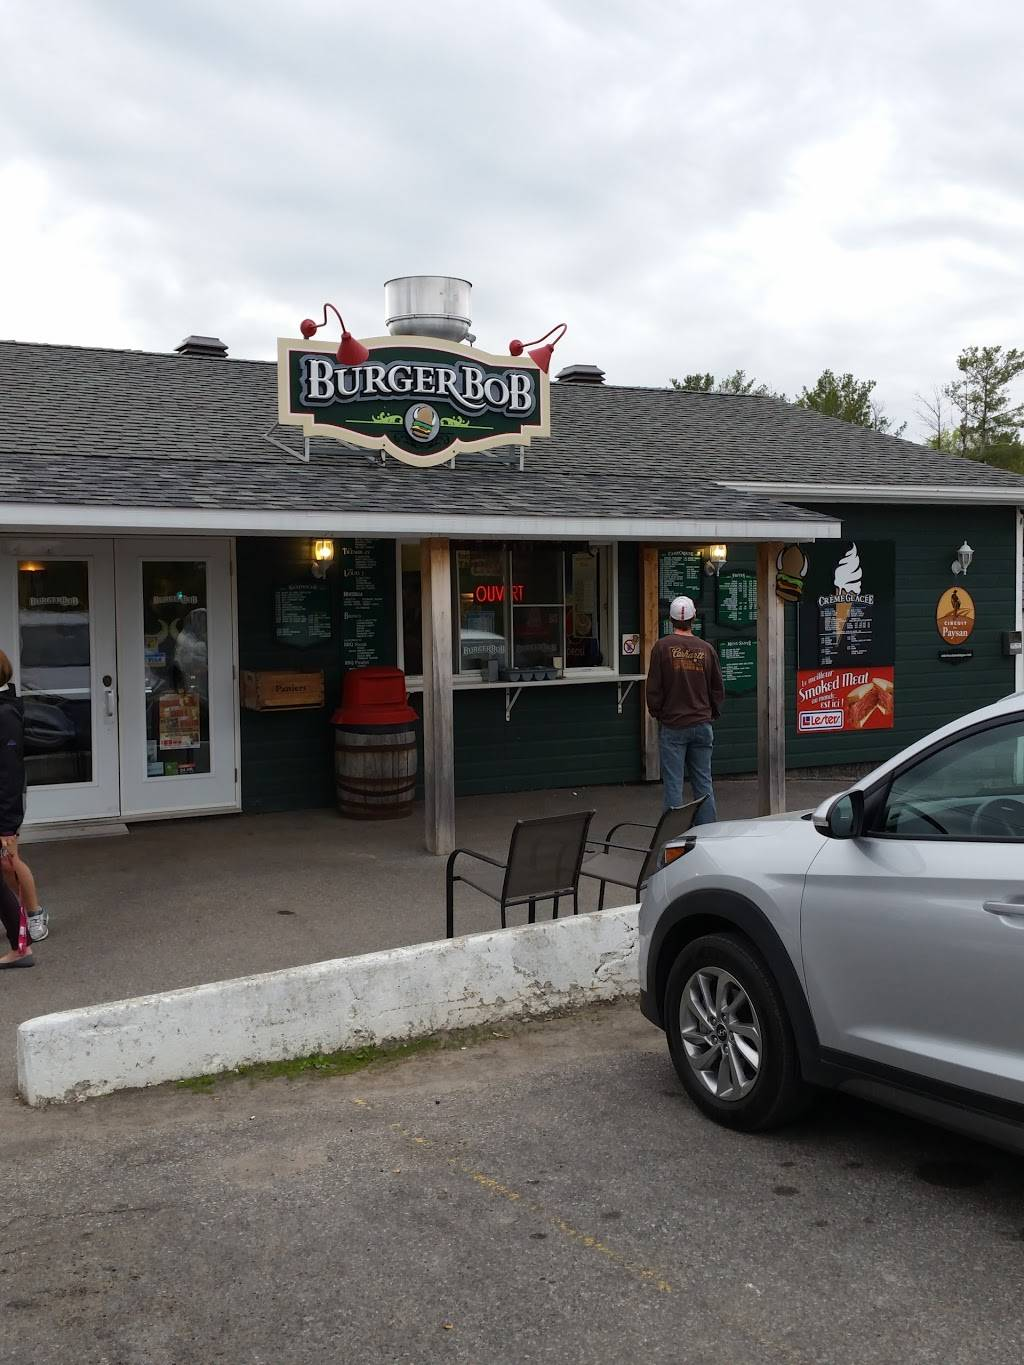 Burger Bob | restaurant | 613 219, Rte N, Hemmingford, QC J0L 1H0, Canada | 4502472624 OR +1 450-247-2624